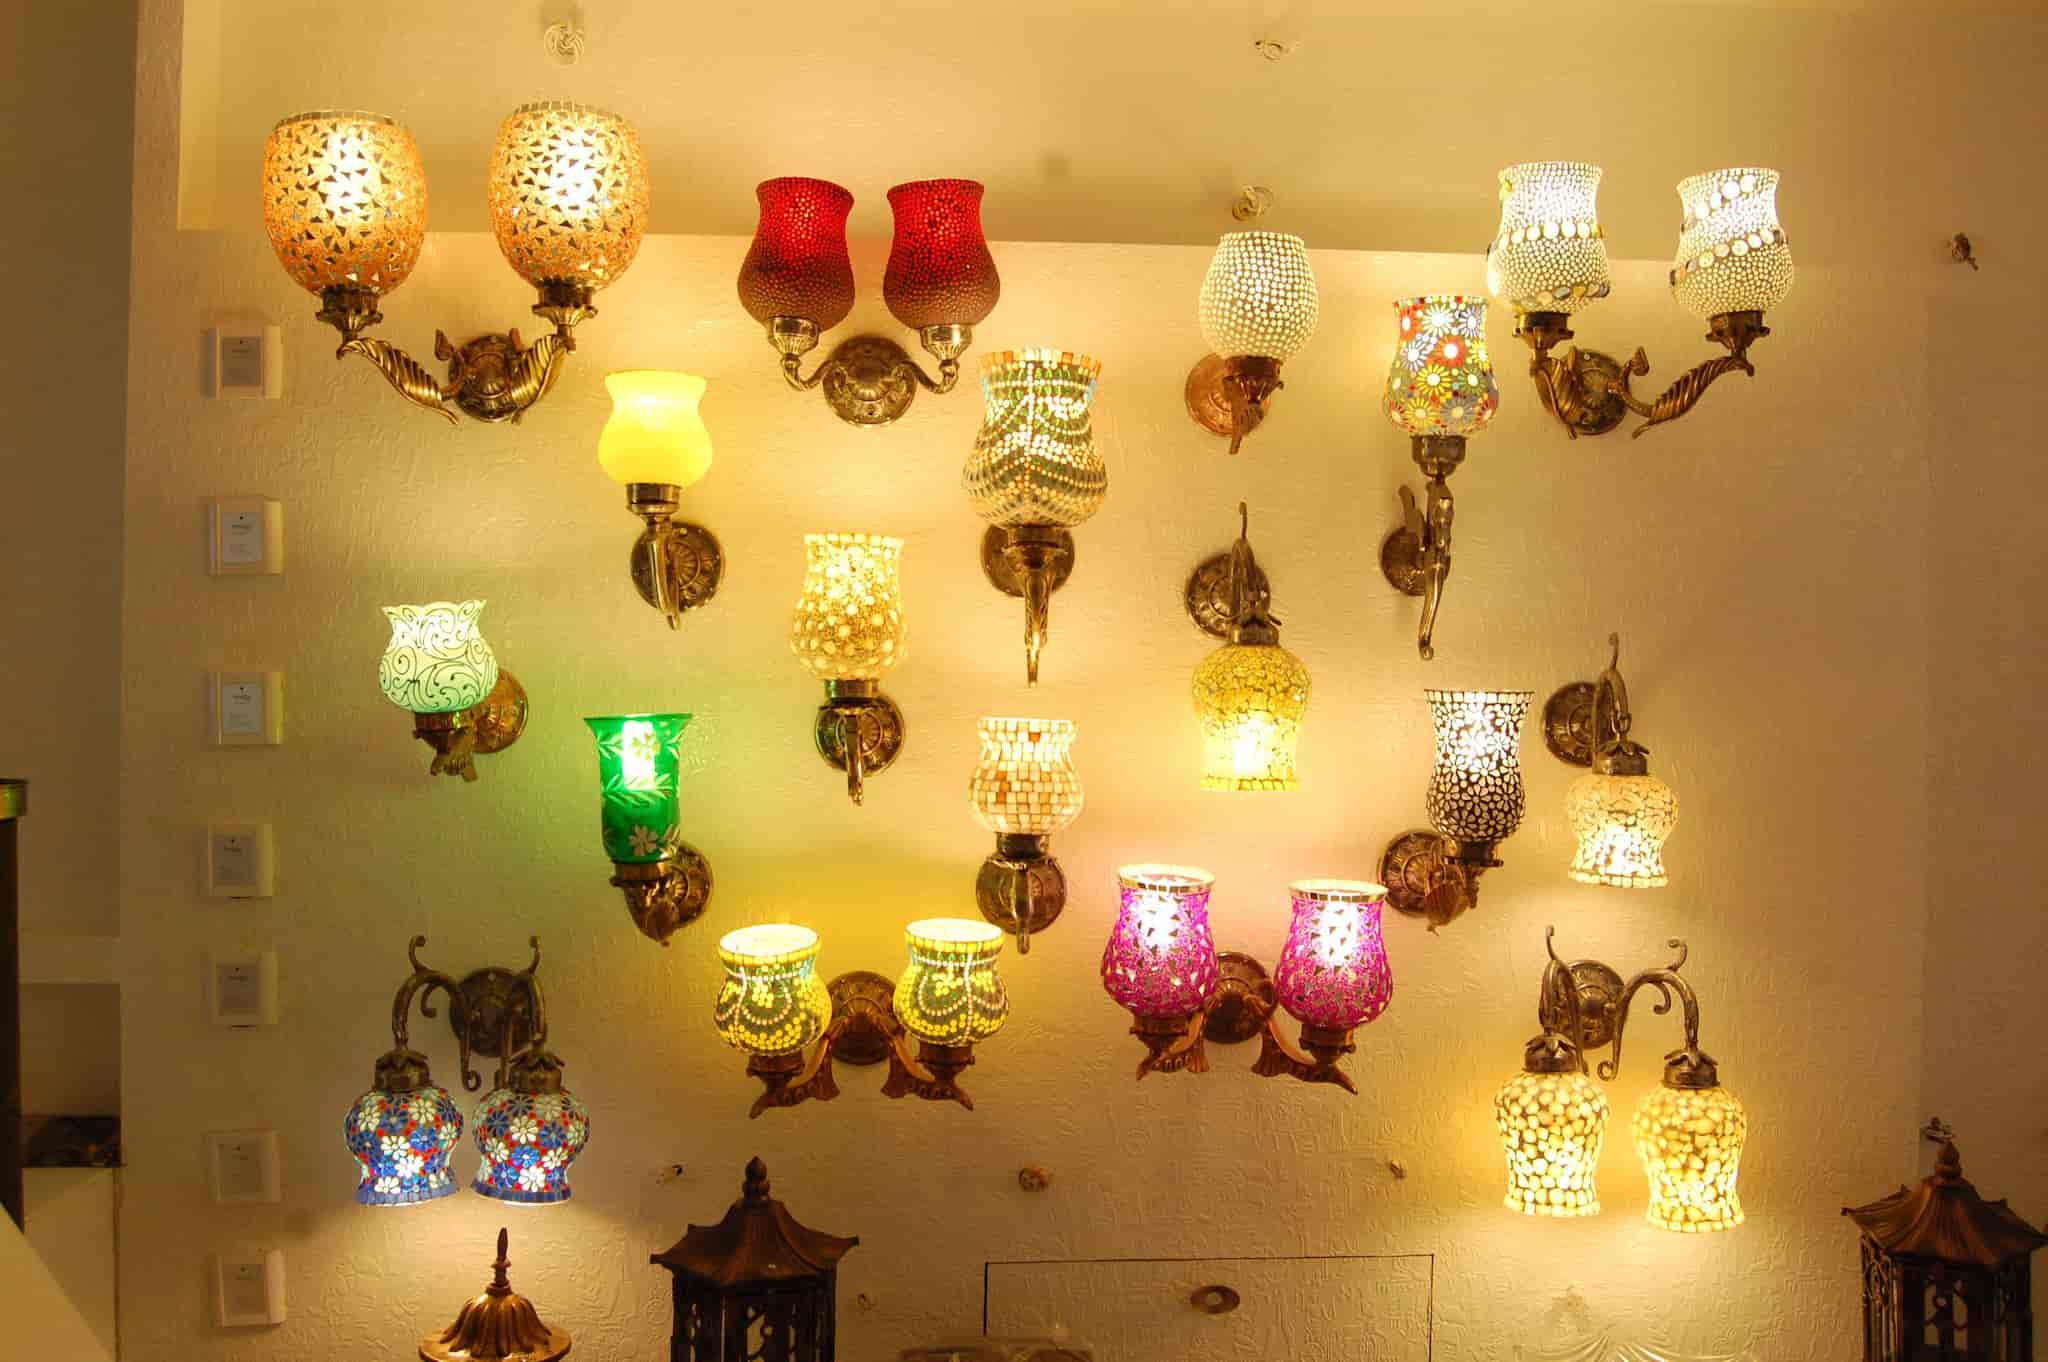 Shree designer lights bhuwana led light dealers in udaipur rajasthan justdial